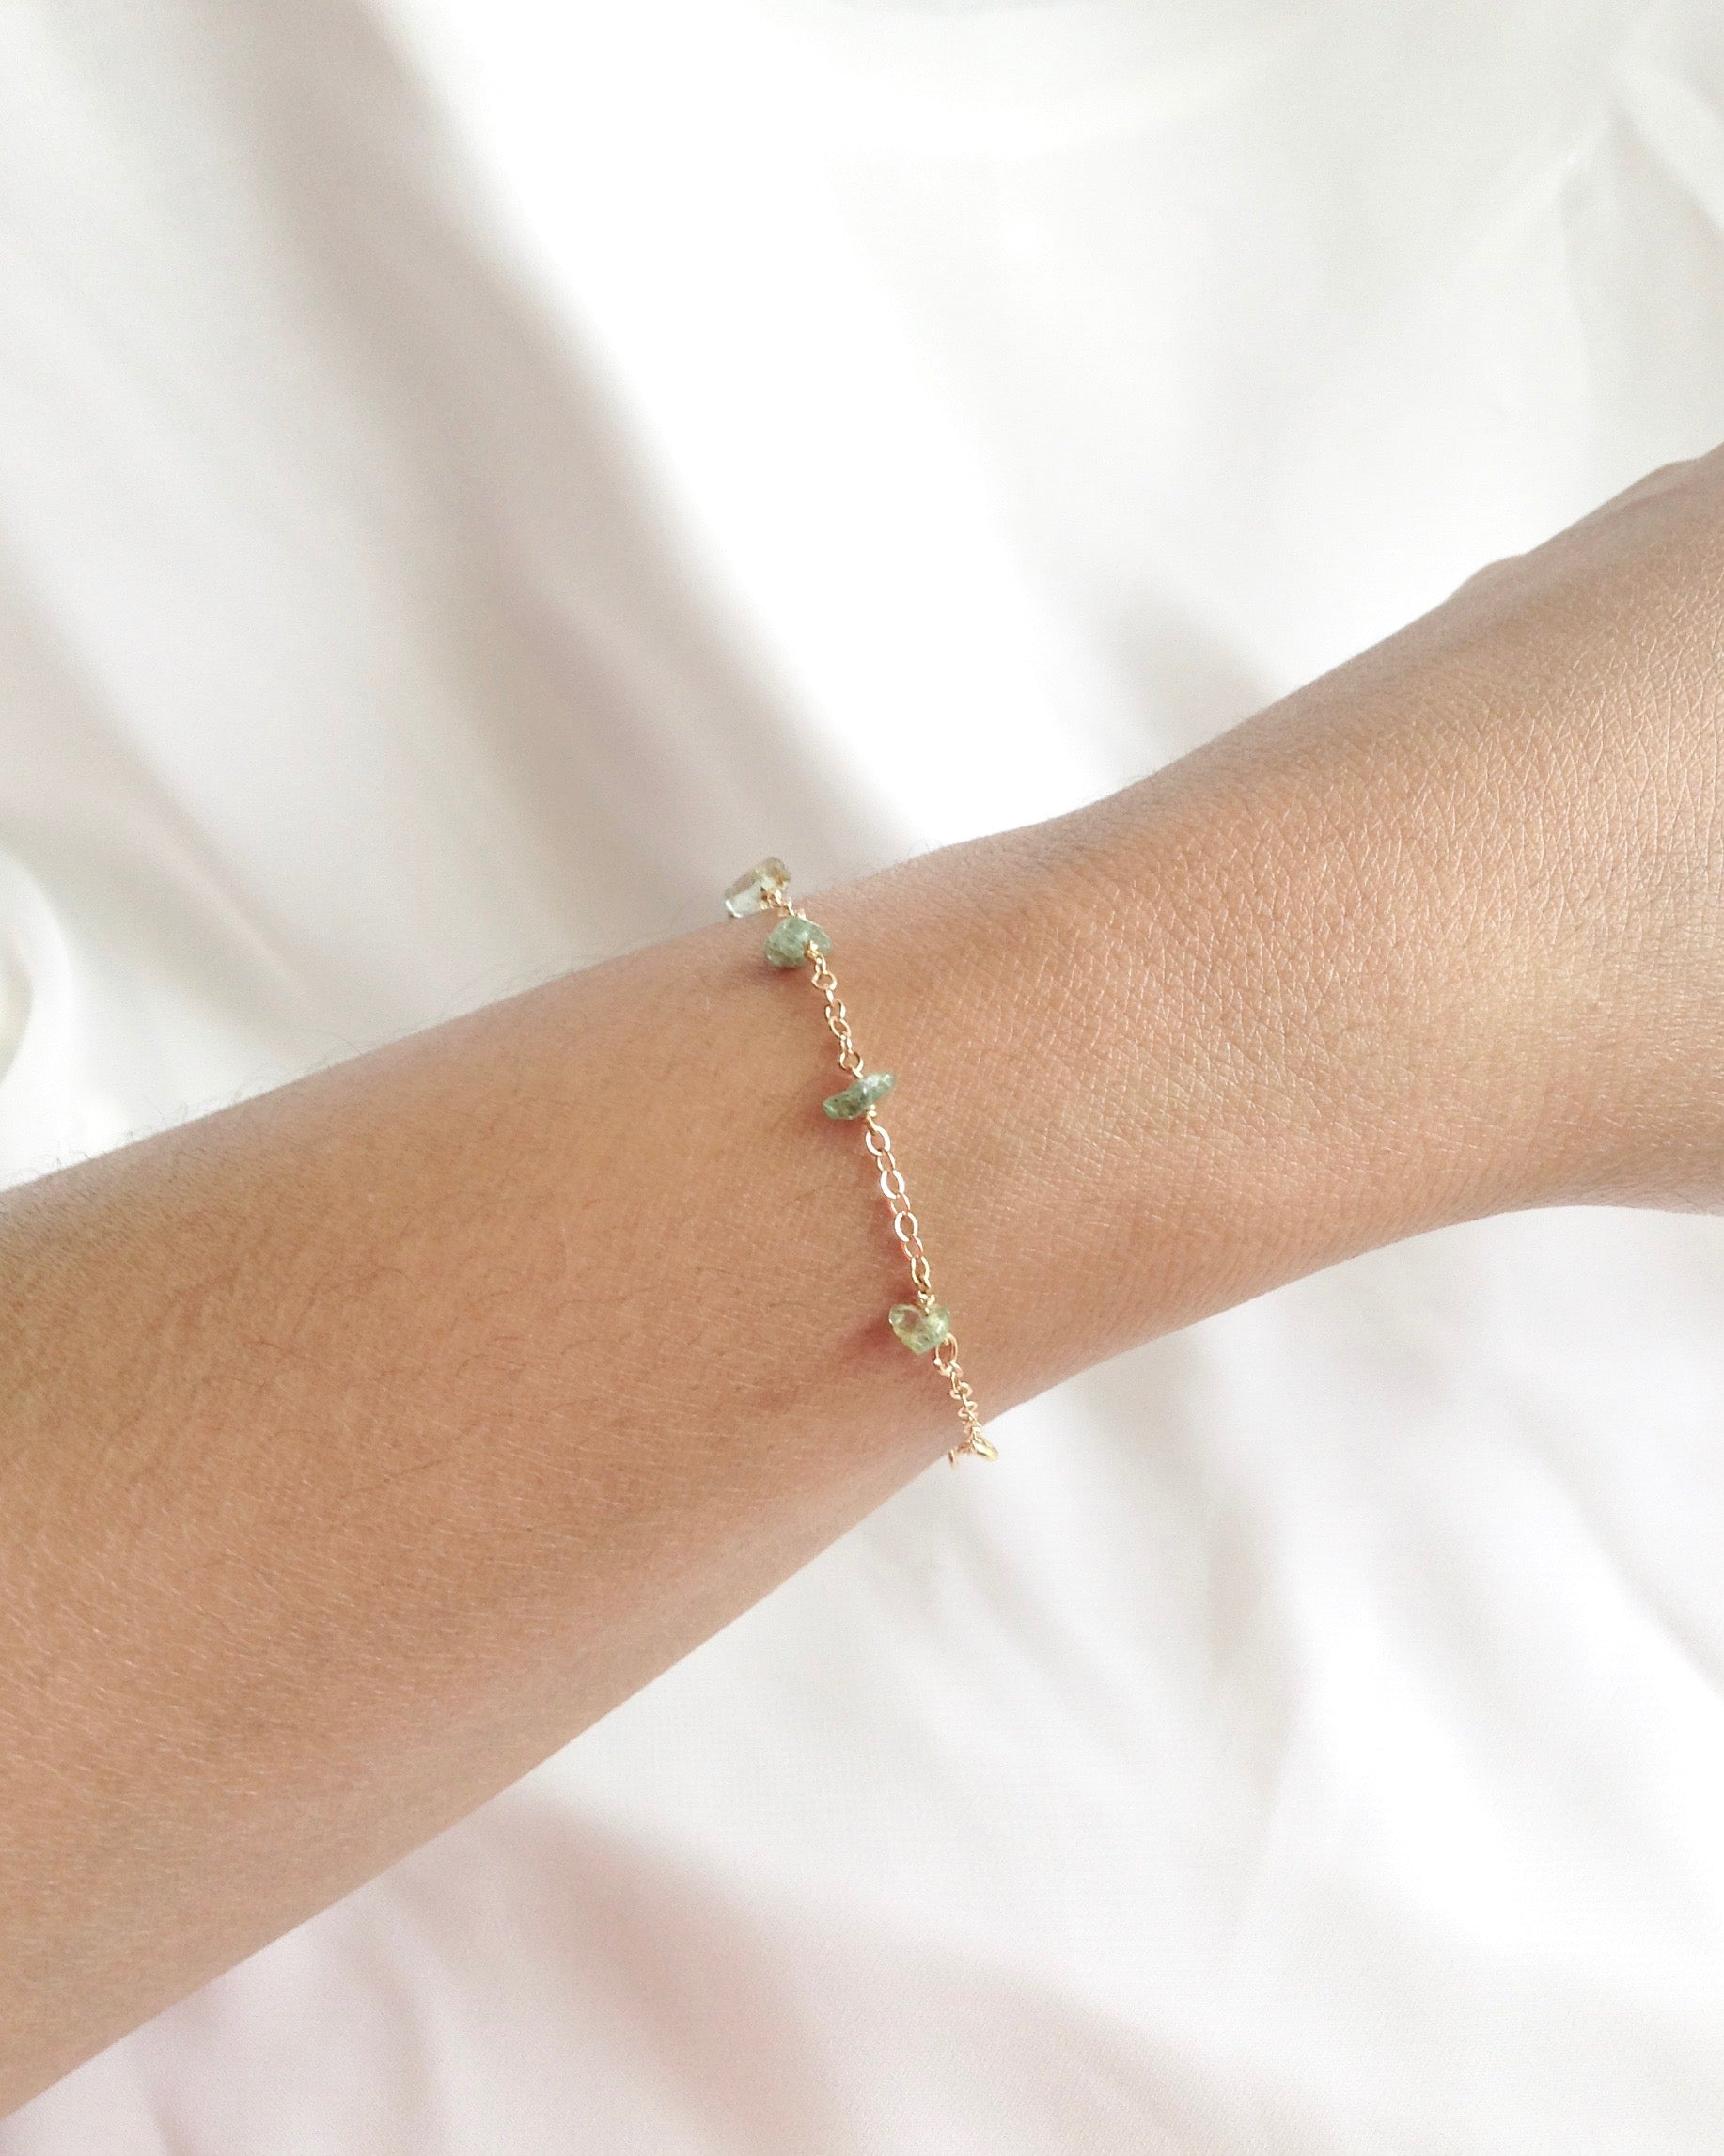 Dainty Emerald Bracelet in Gold Filled or Sterling Silver | IB Jewelry